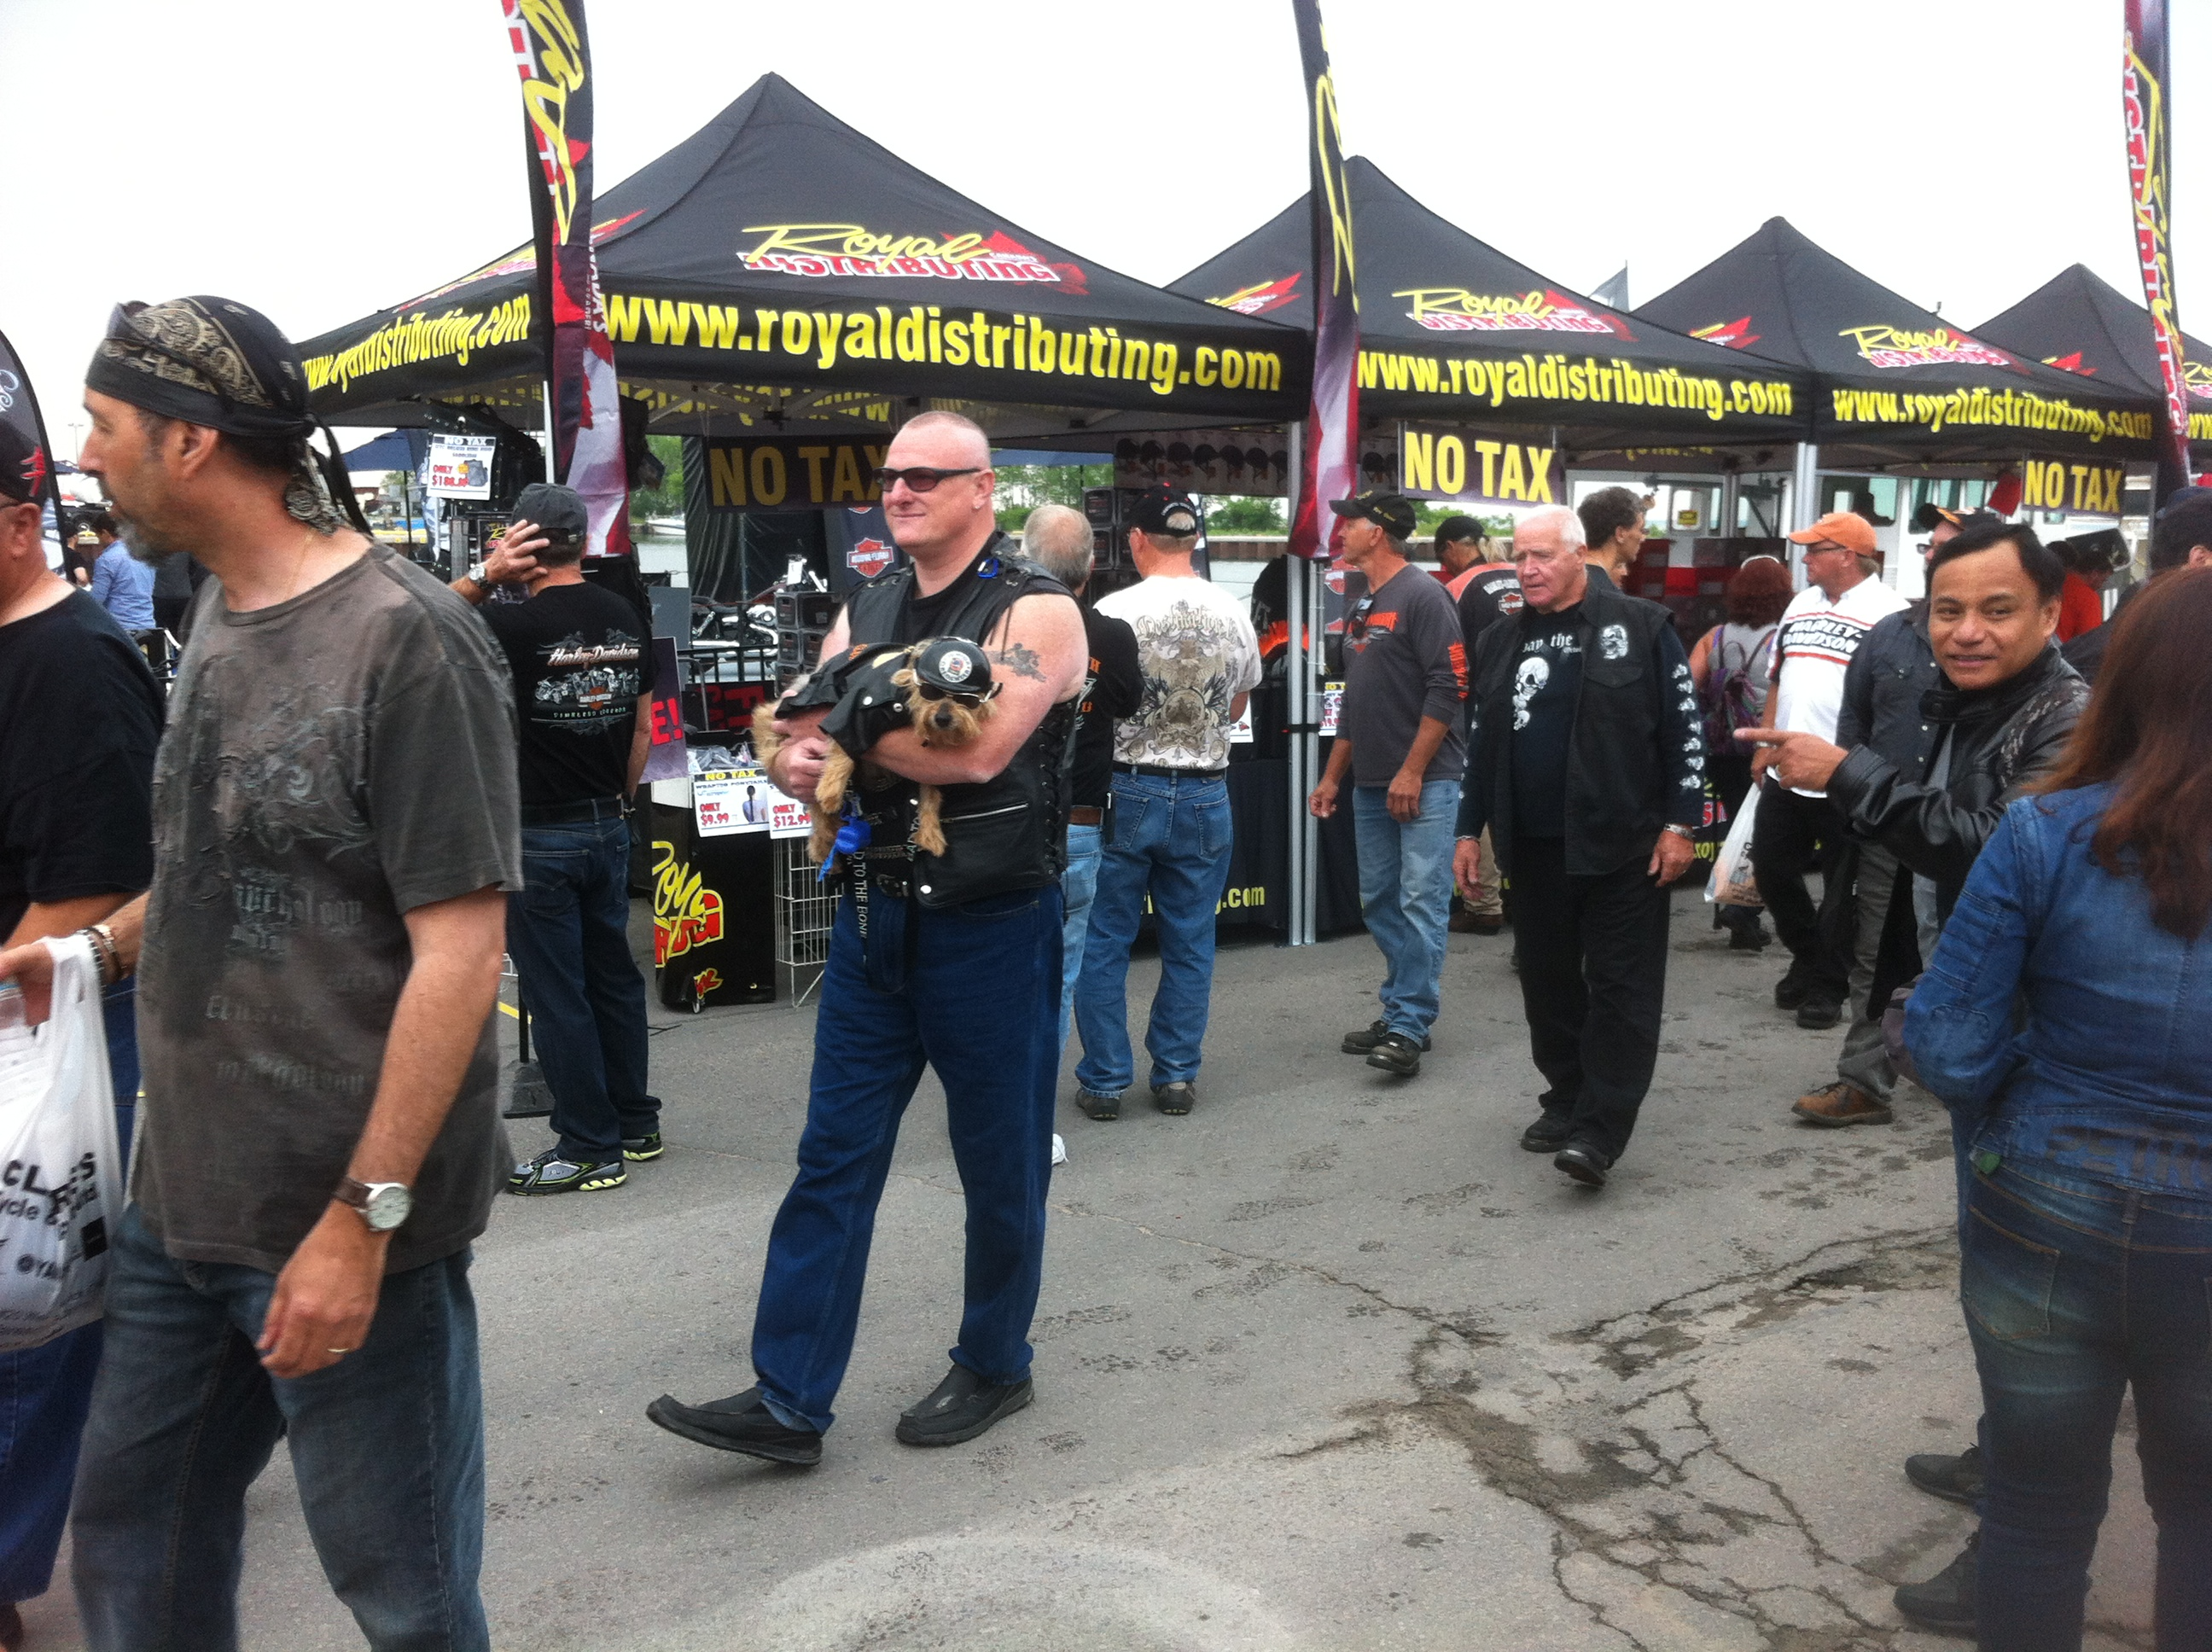 port dover single jewish girls Motorcyclists flock to port dover for friday  coalition avenir quebec boasts more women than men in  woman who duped tinder matches into dating competition has.